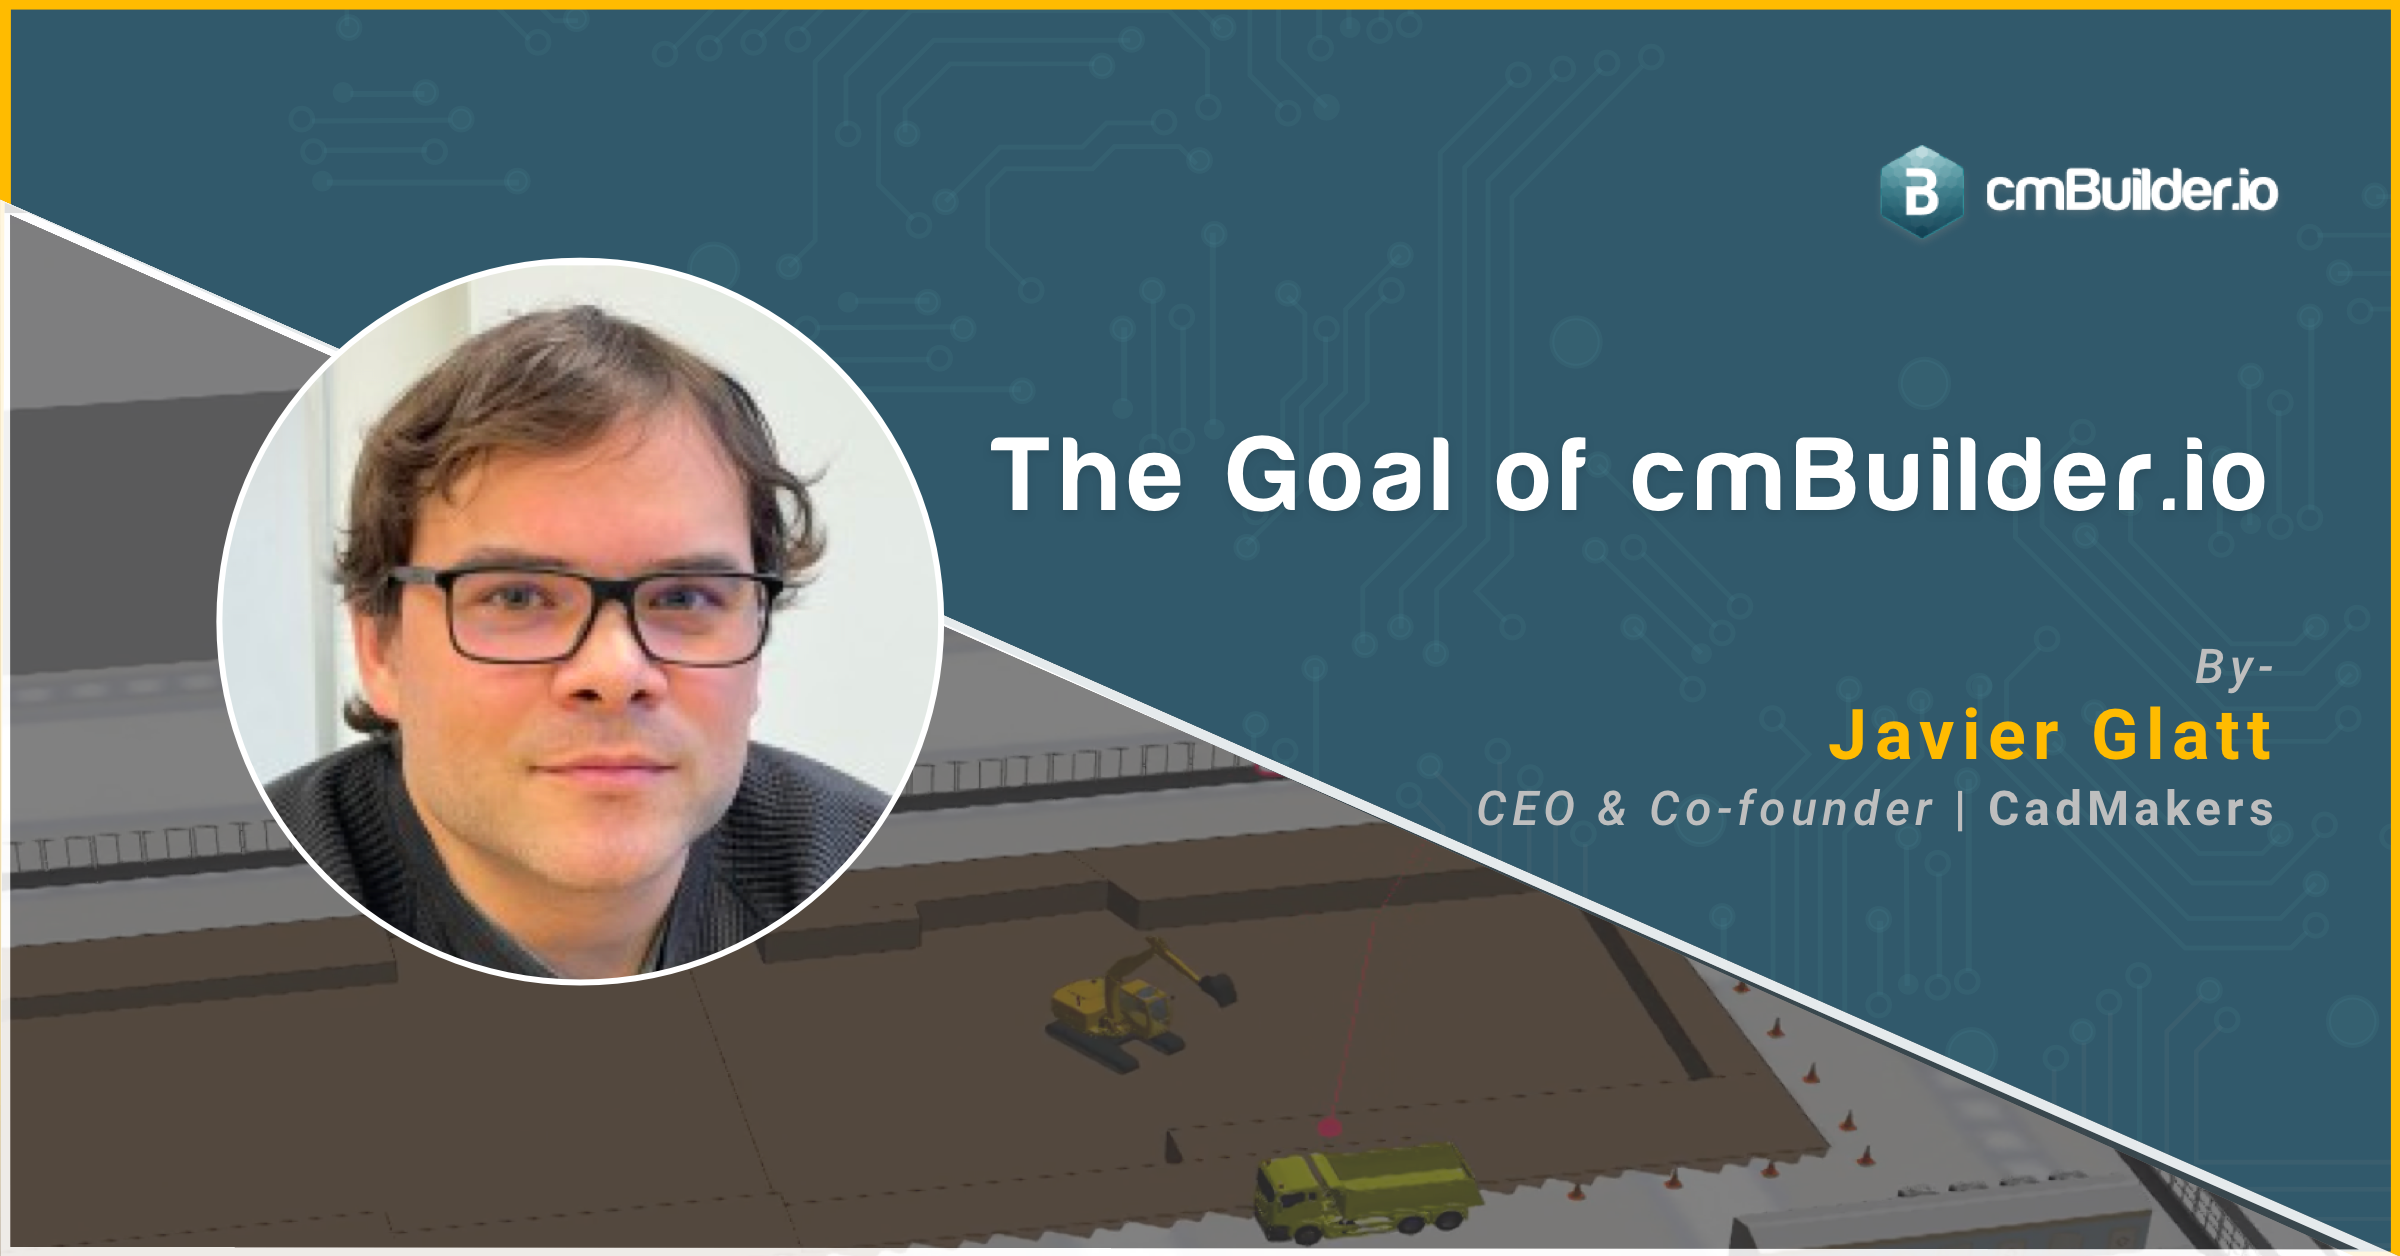 Our CEO, Javier Glatt's thoughts on why we are building cmBuilder.io and looking into the future of the construction industry.